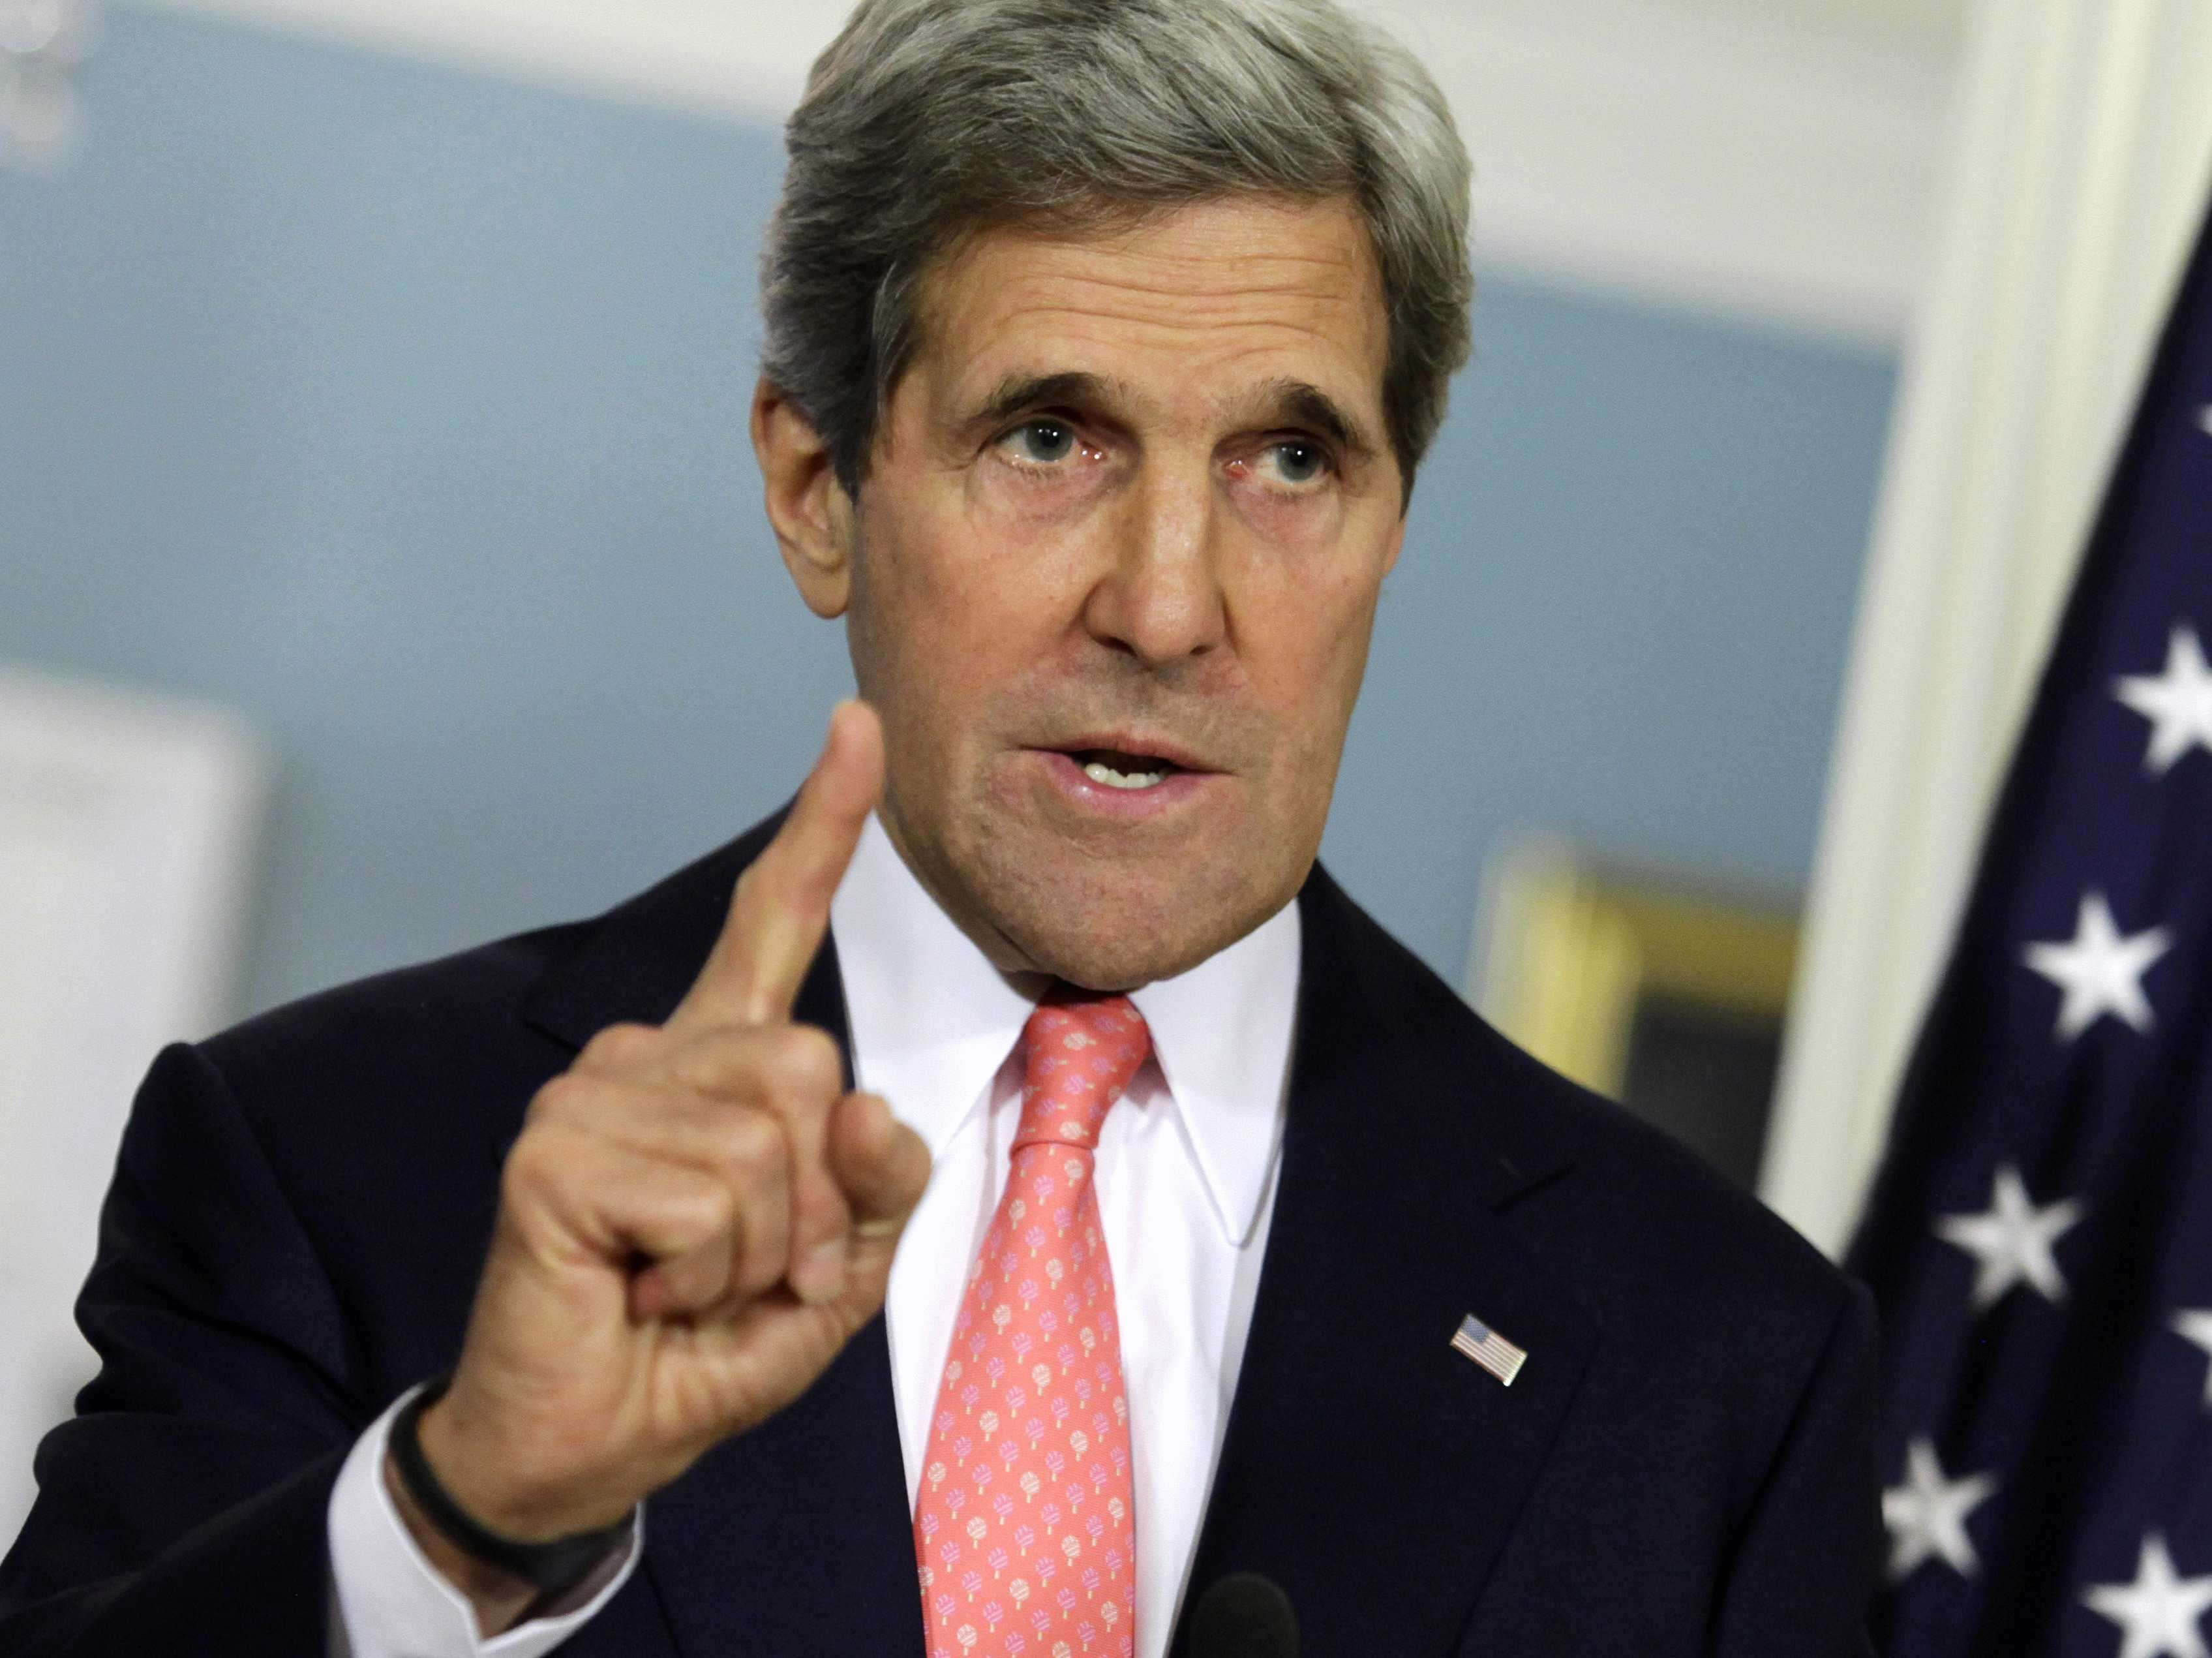 Kerry Outlines Steps for Caribbean Economic Growth